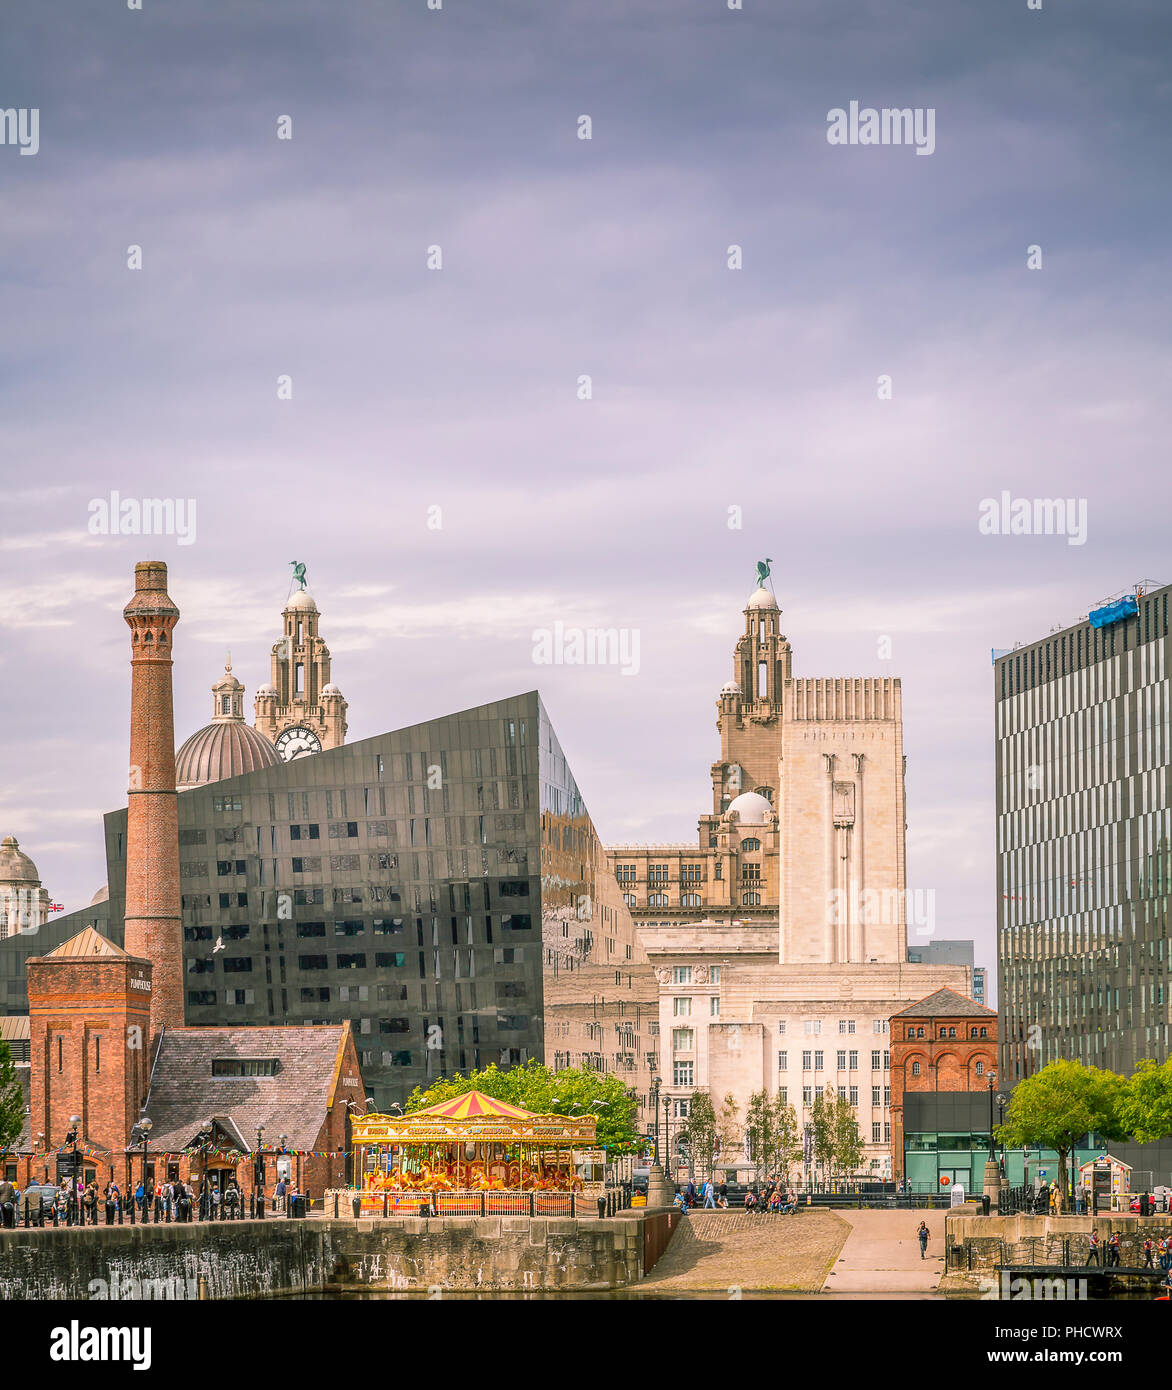 Looking across the dock in Liverpool towards the Royal Liver Building and Pumphouse. - Stock Image